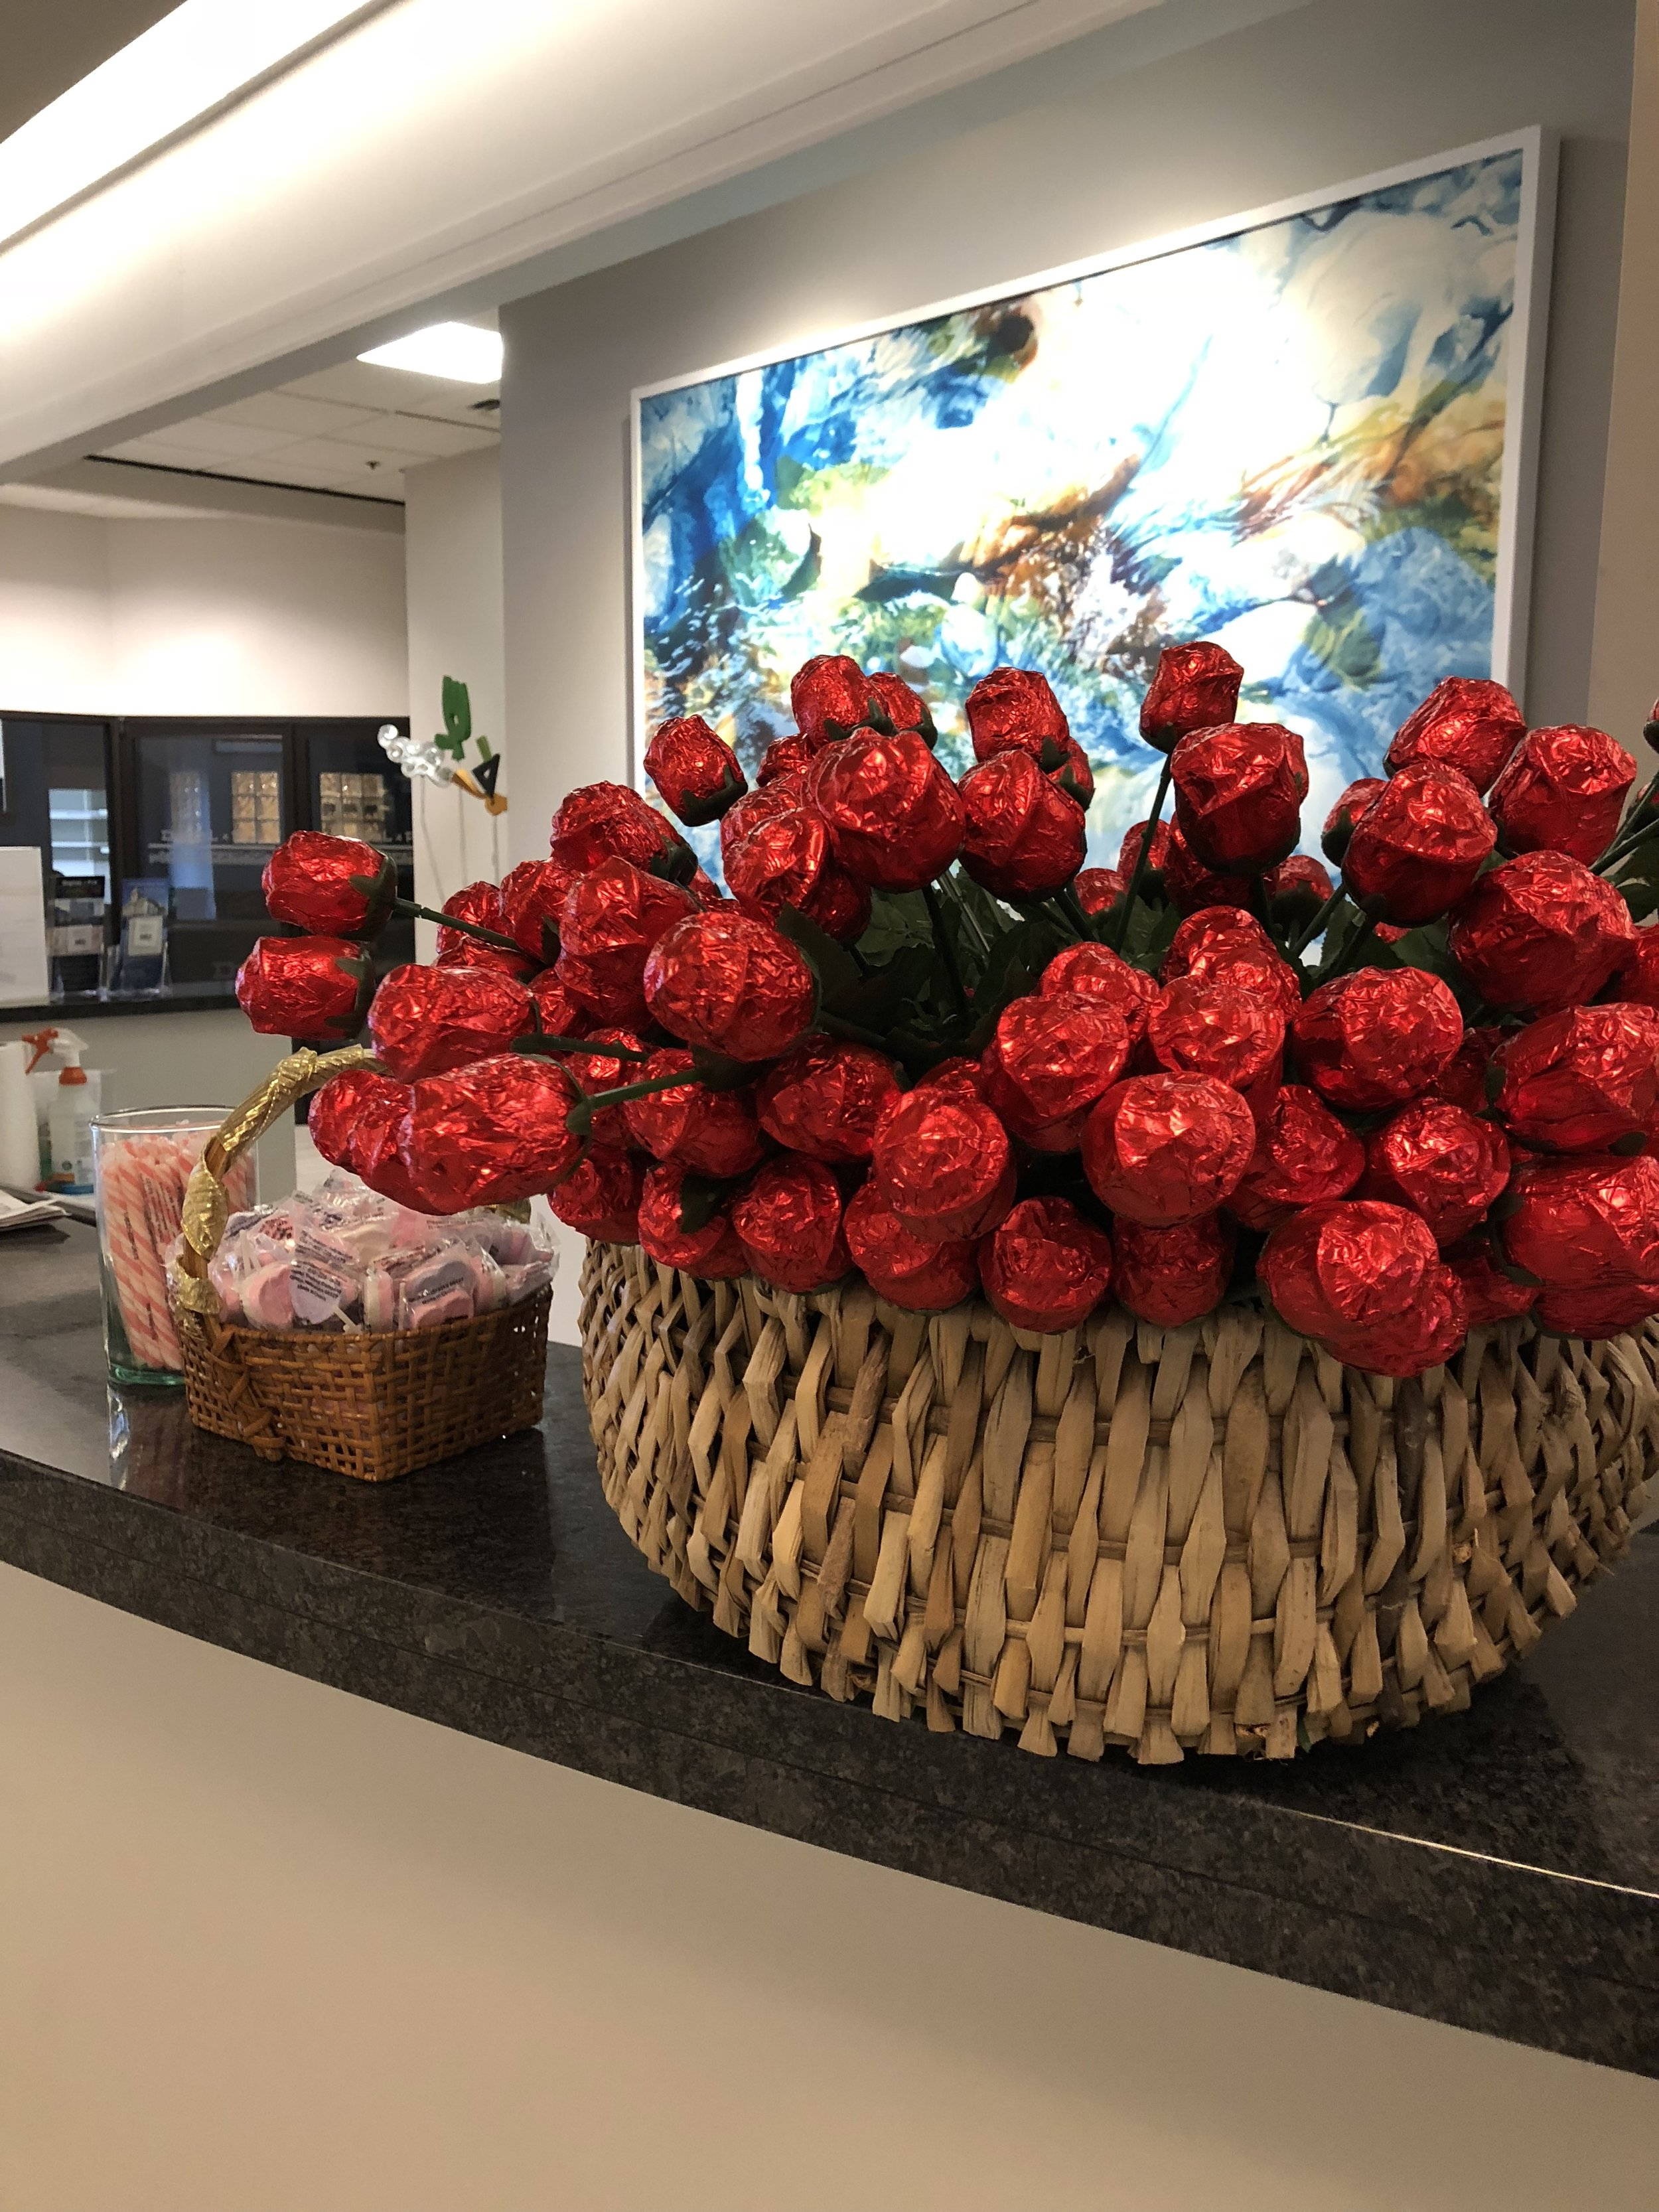 Roses and sweets